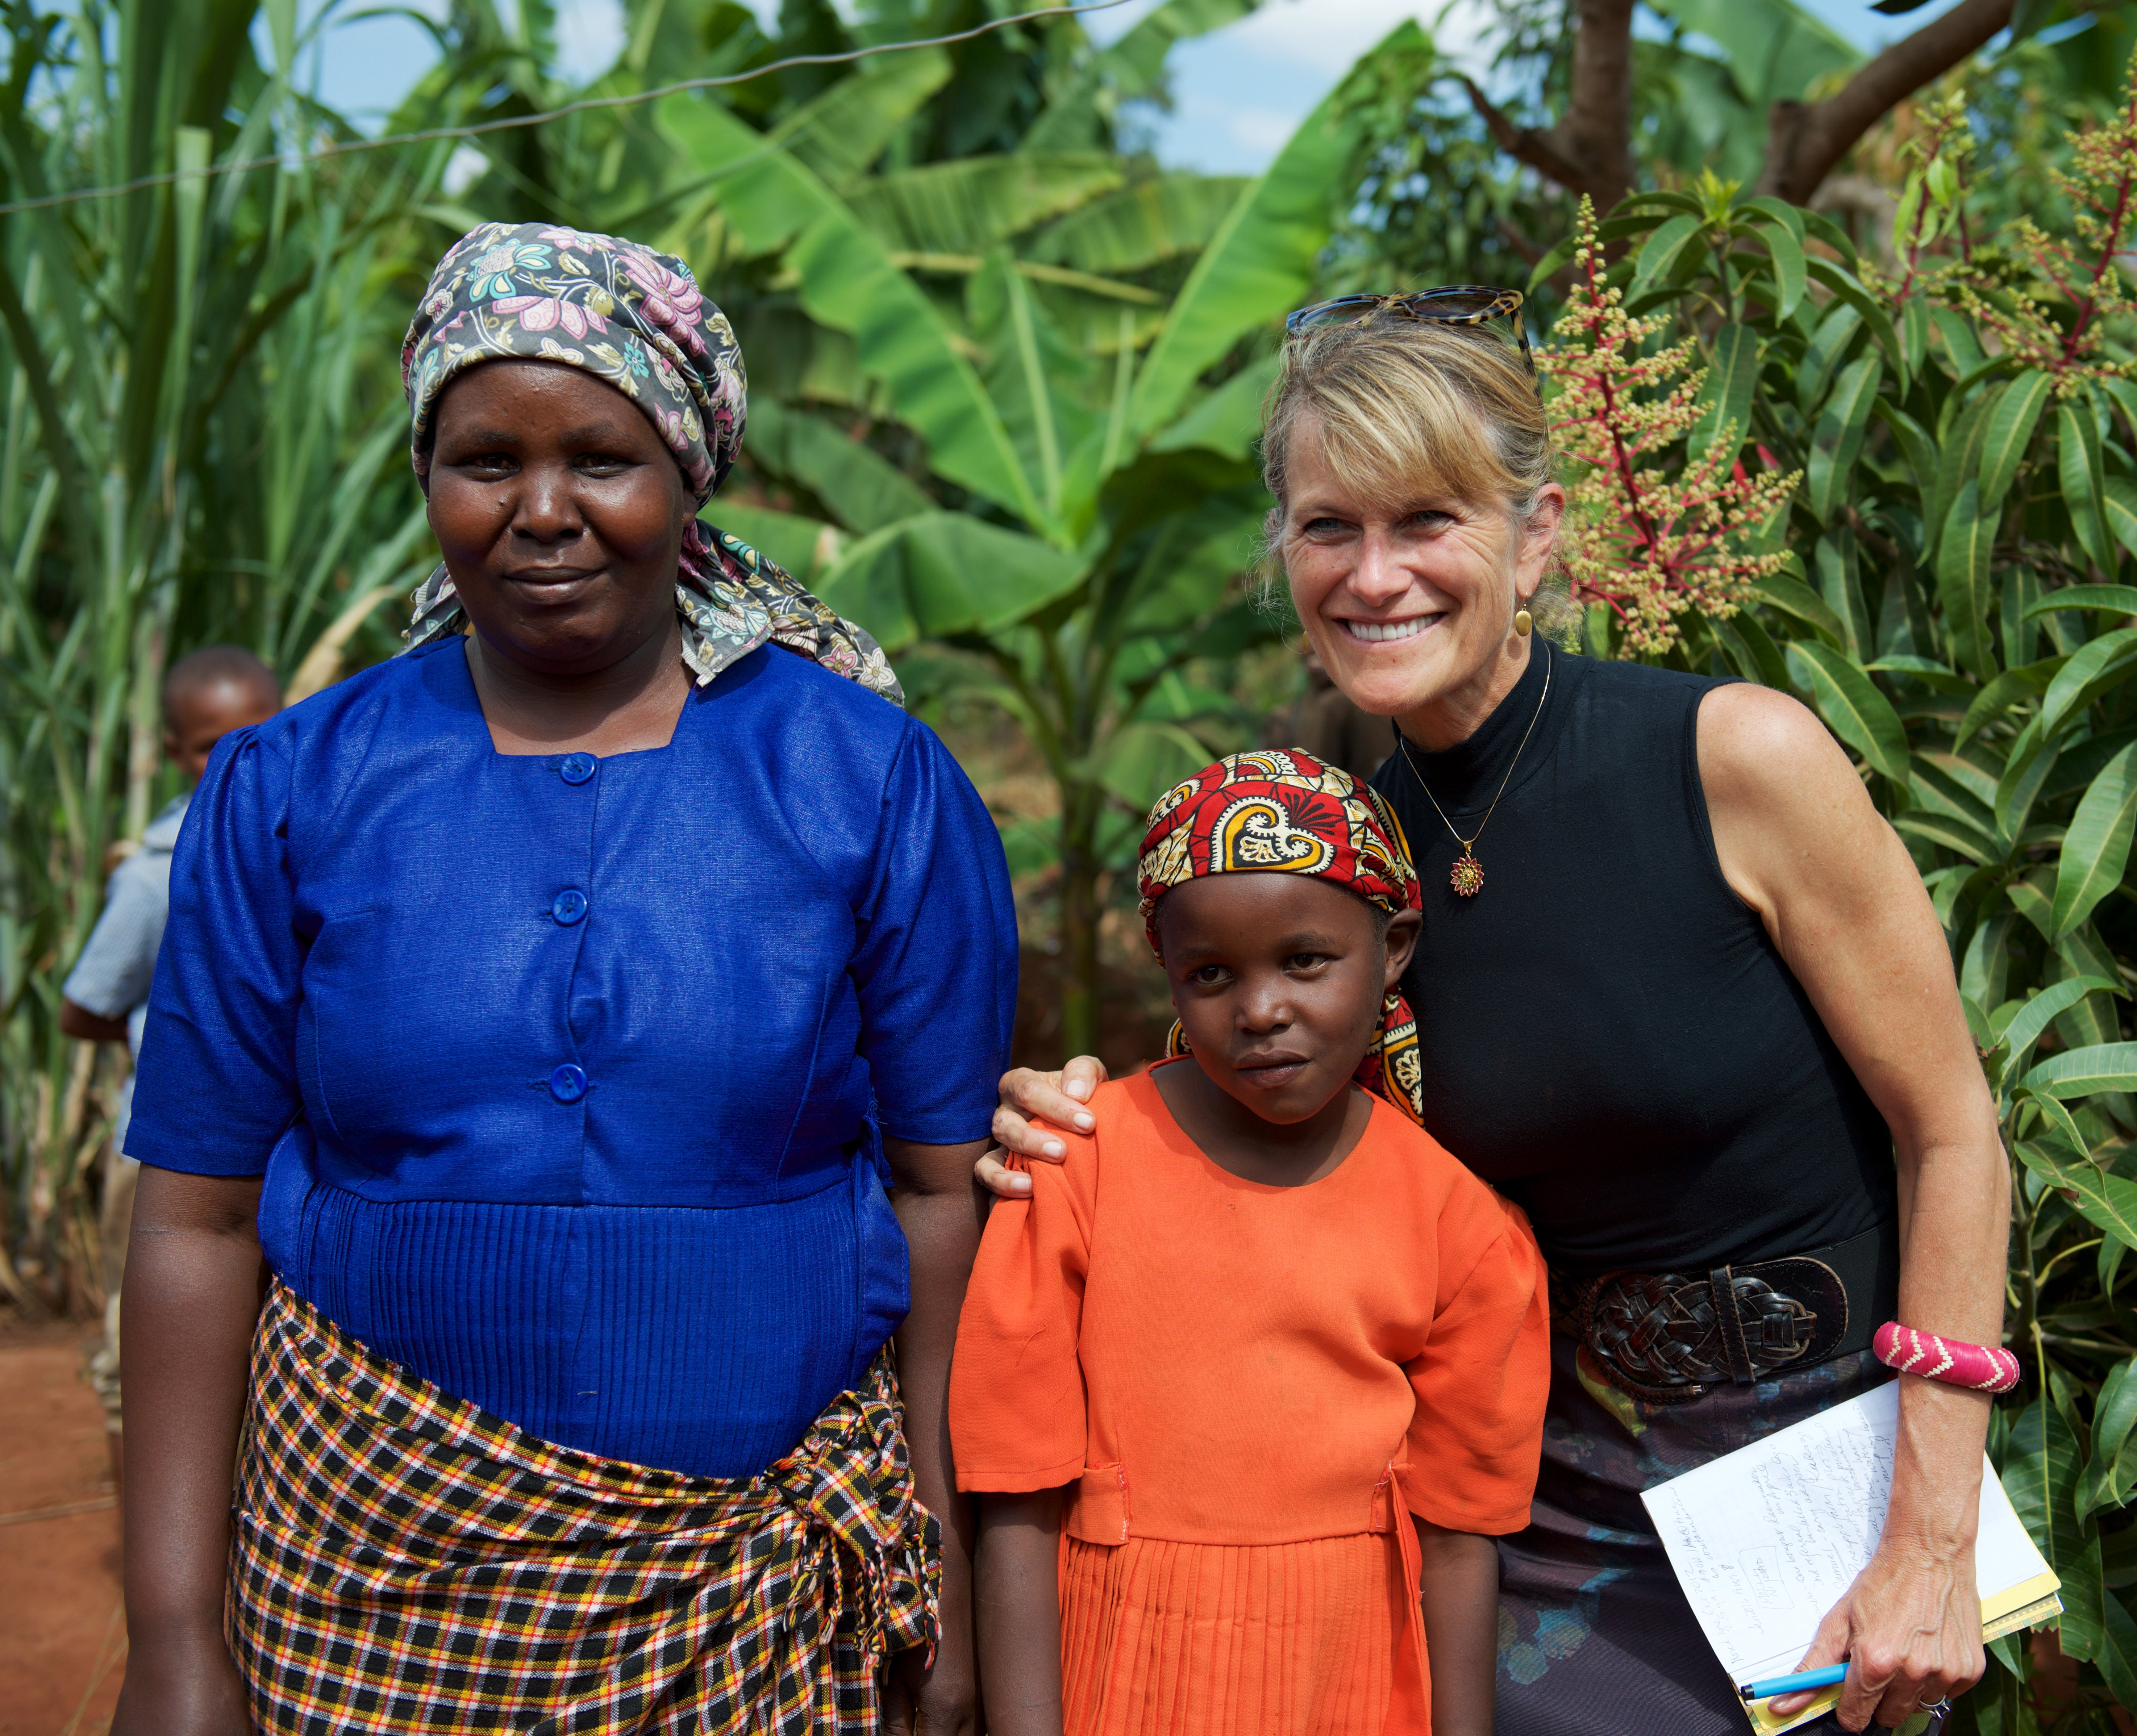 Jacqueline Novogratz with one of the families we visited in Africa